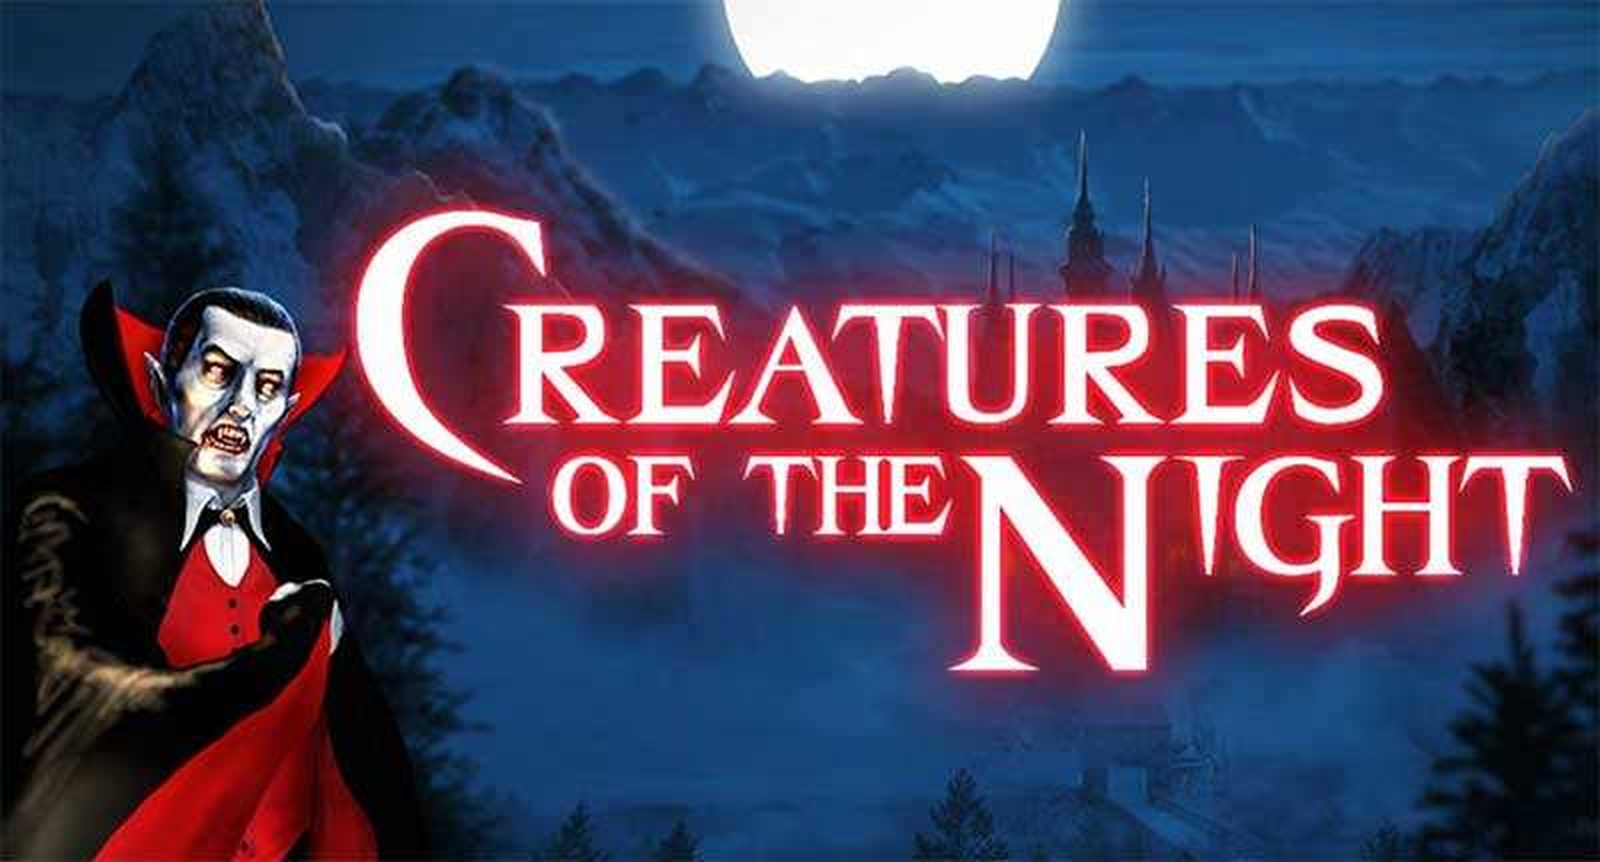 The Creatures of the Night Online Slot Demo Game by Bally Wulff